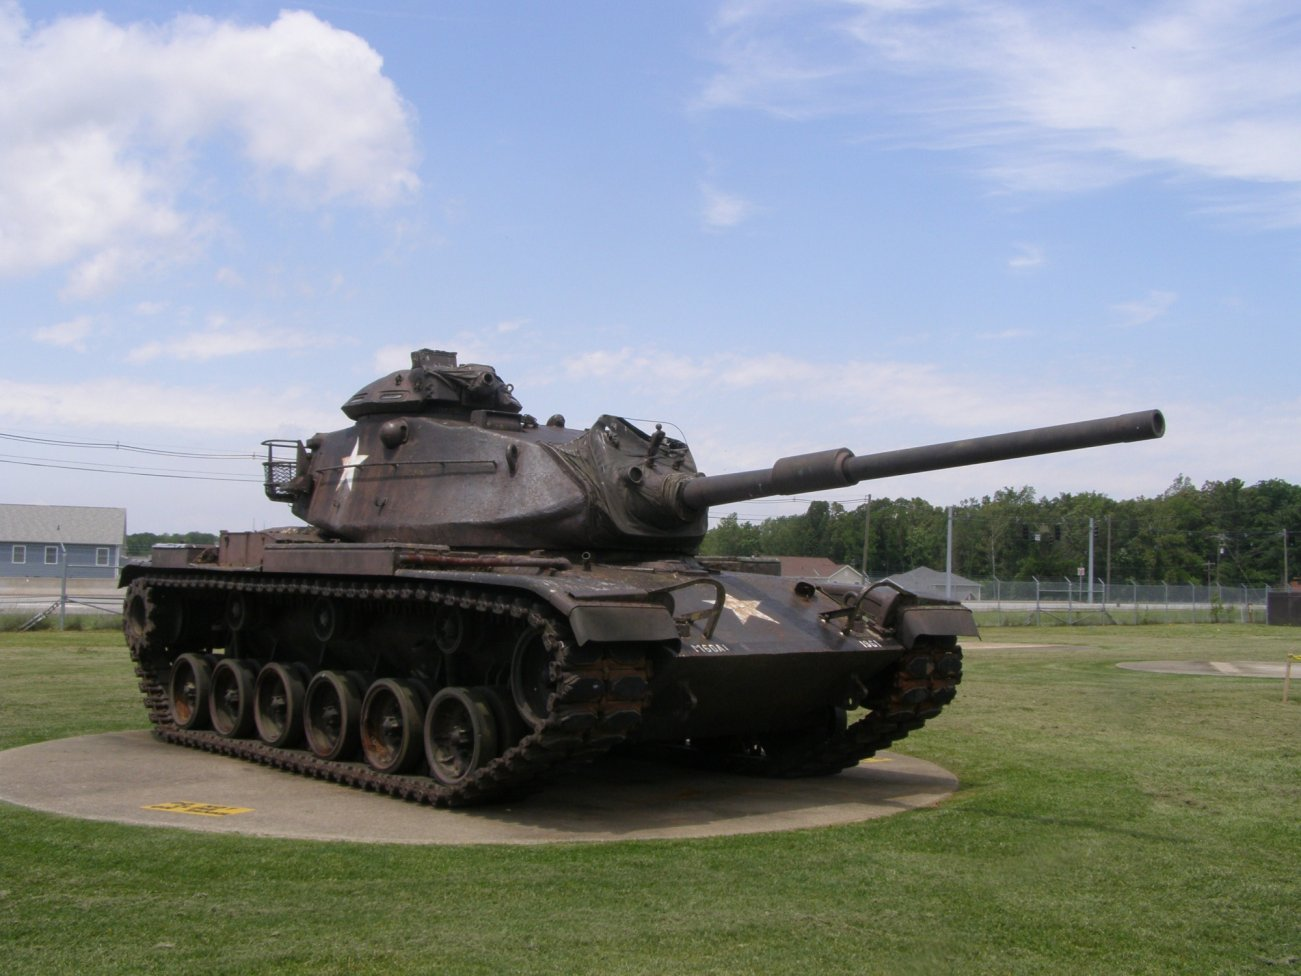 Meet America's M60 Patton: The Tank Designed to Fight Russia in Europe